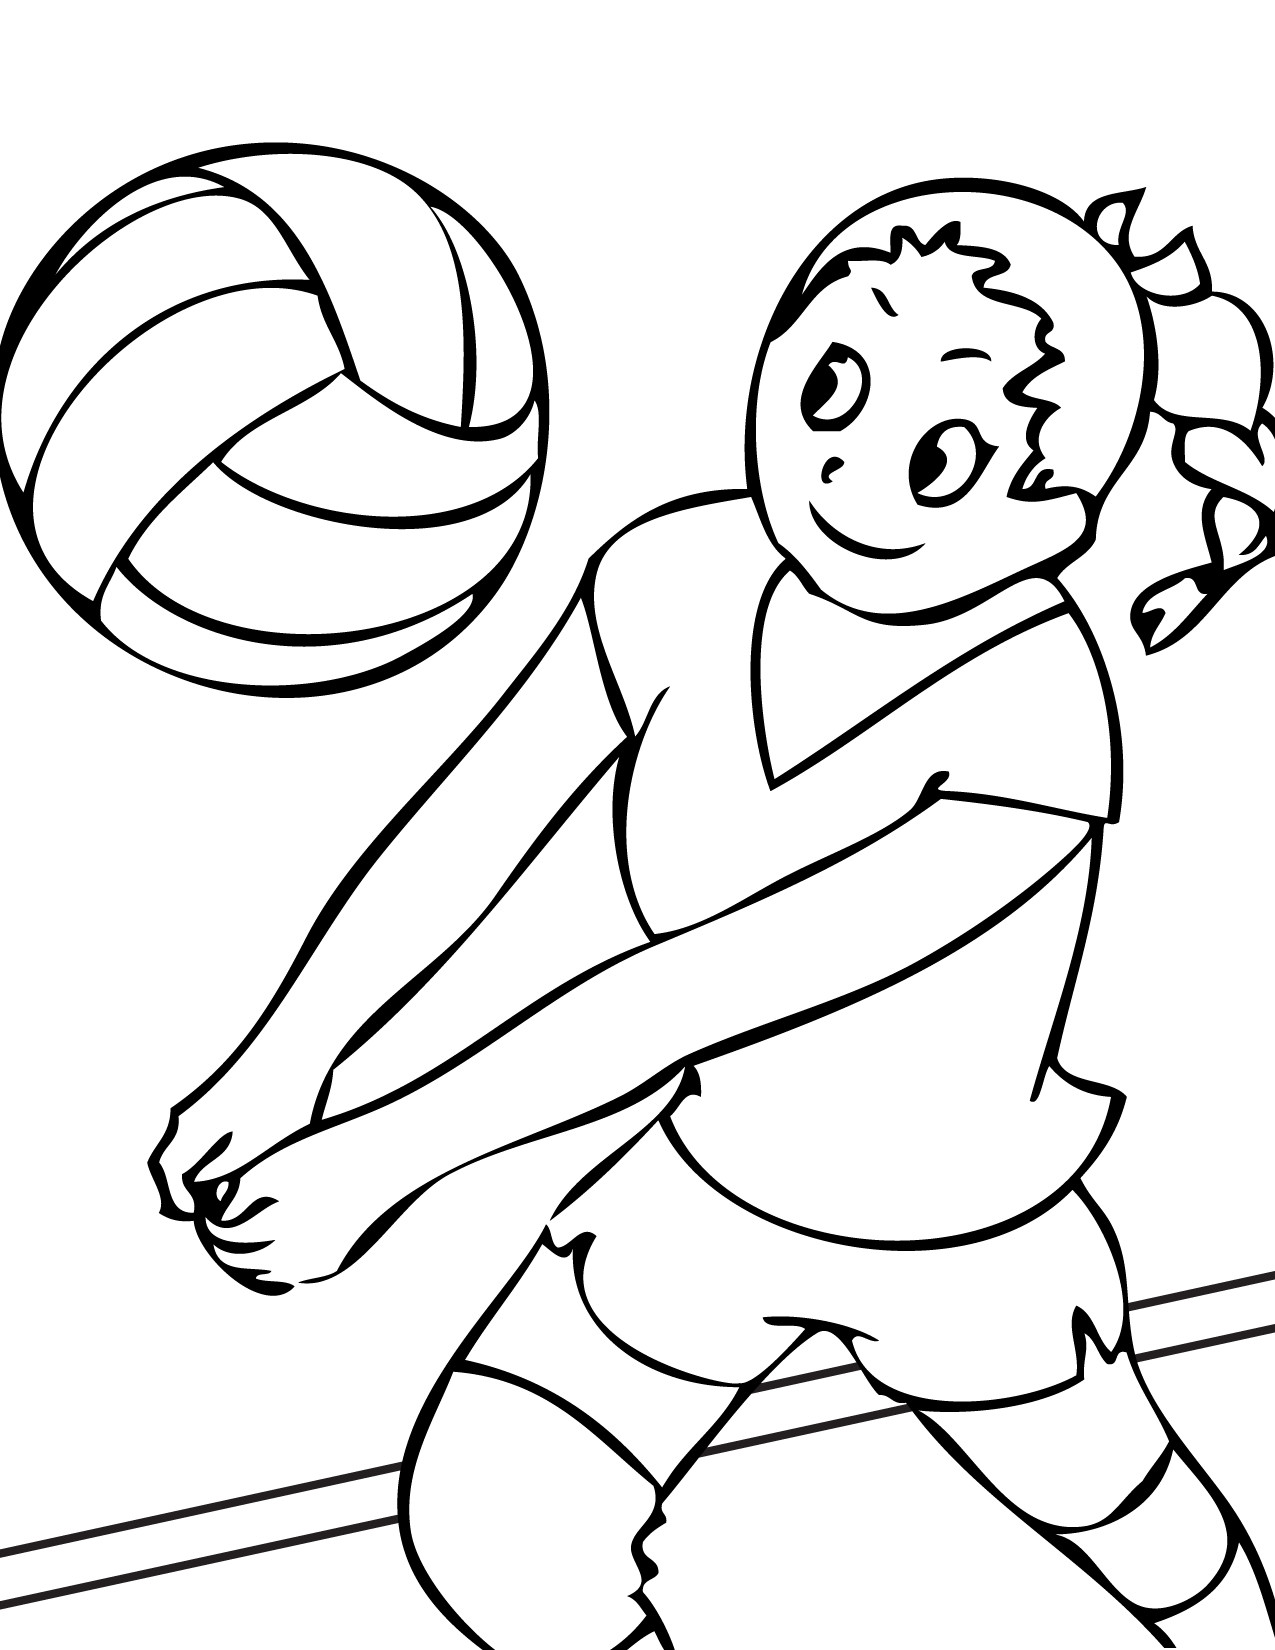 Sports Coloring Pages For Kids  Free Printable Volleyball Coloring Pages For Kids